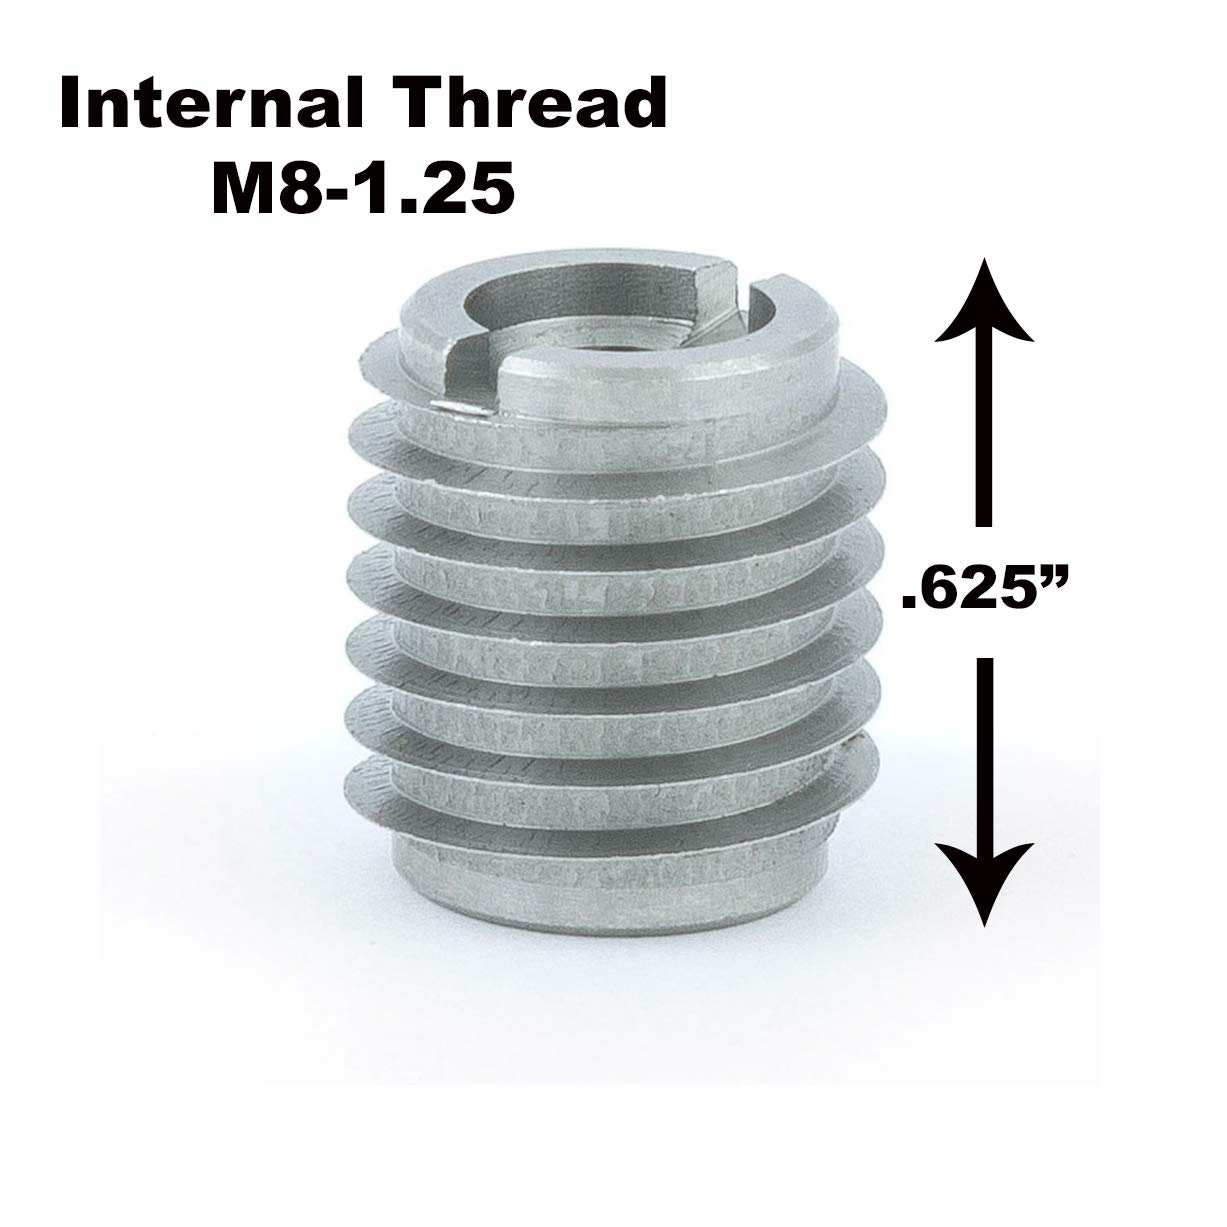 #6-40 Thread Size Pack of 10 E-Z Lok SK30420 Helical Threaded Insert Kit 0.276 Installed Length 304 Stainless Steel